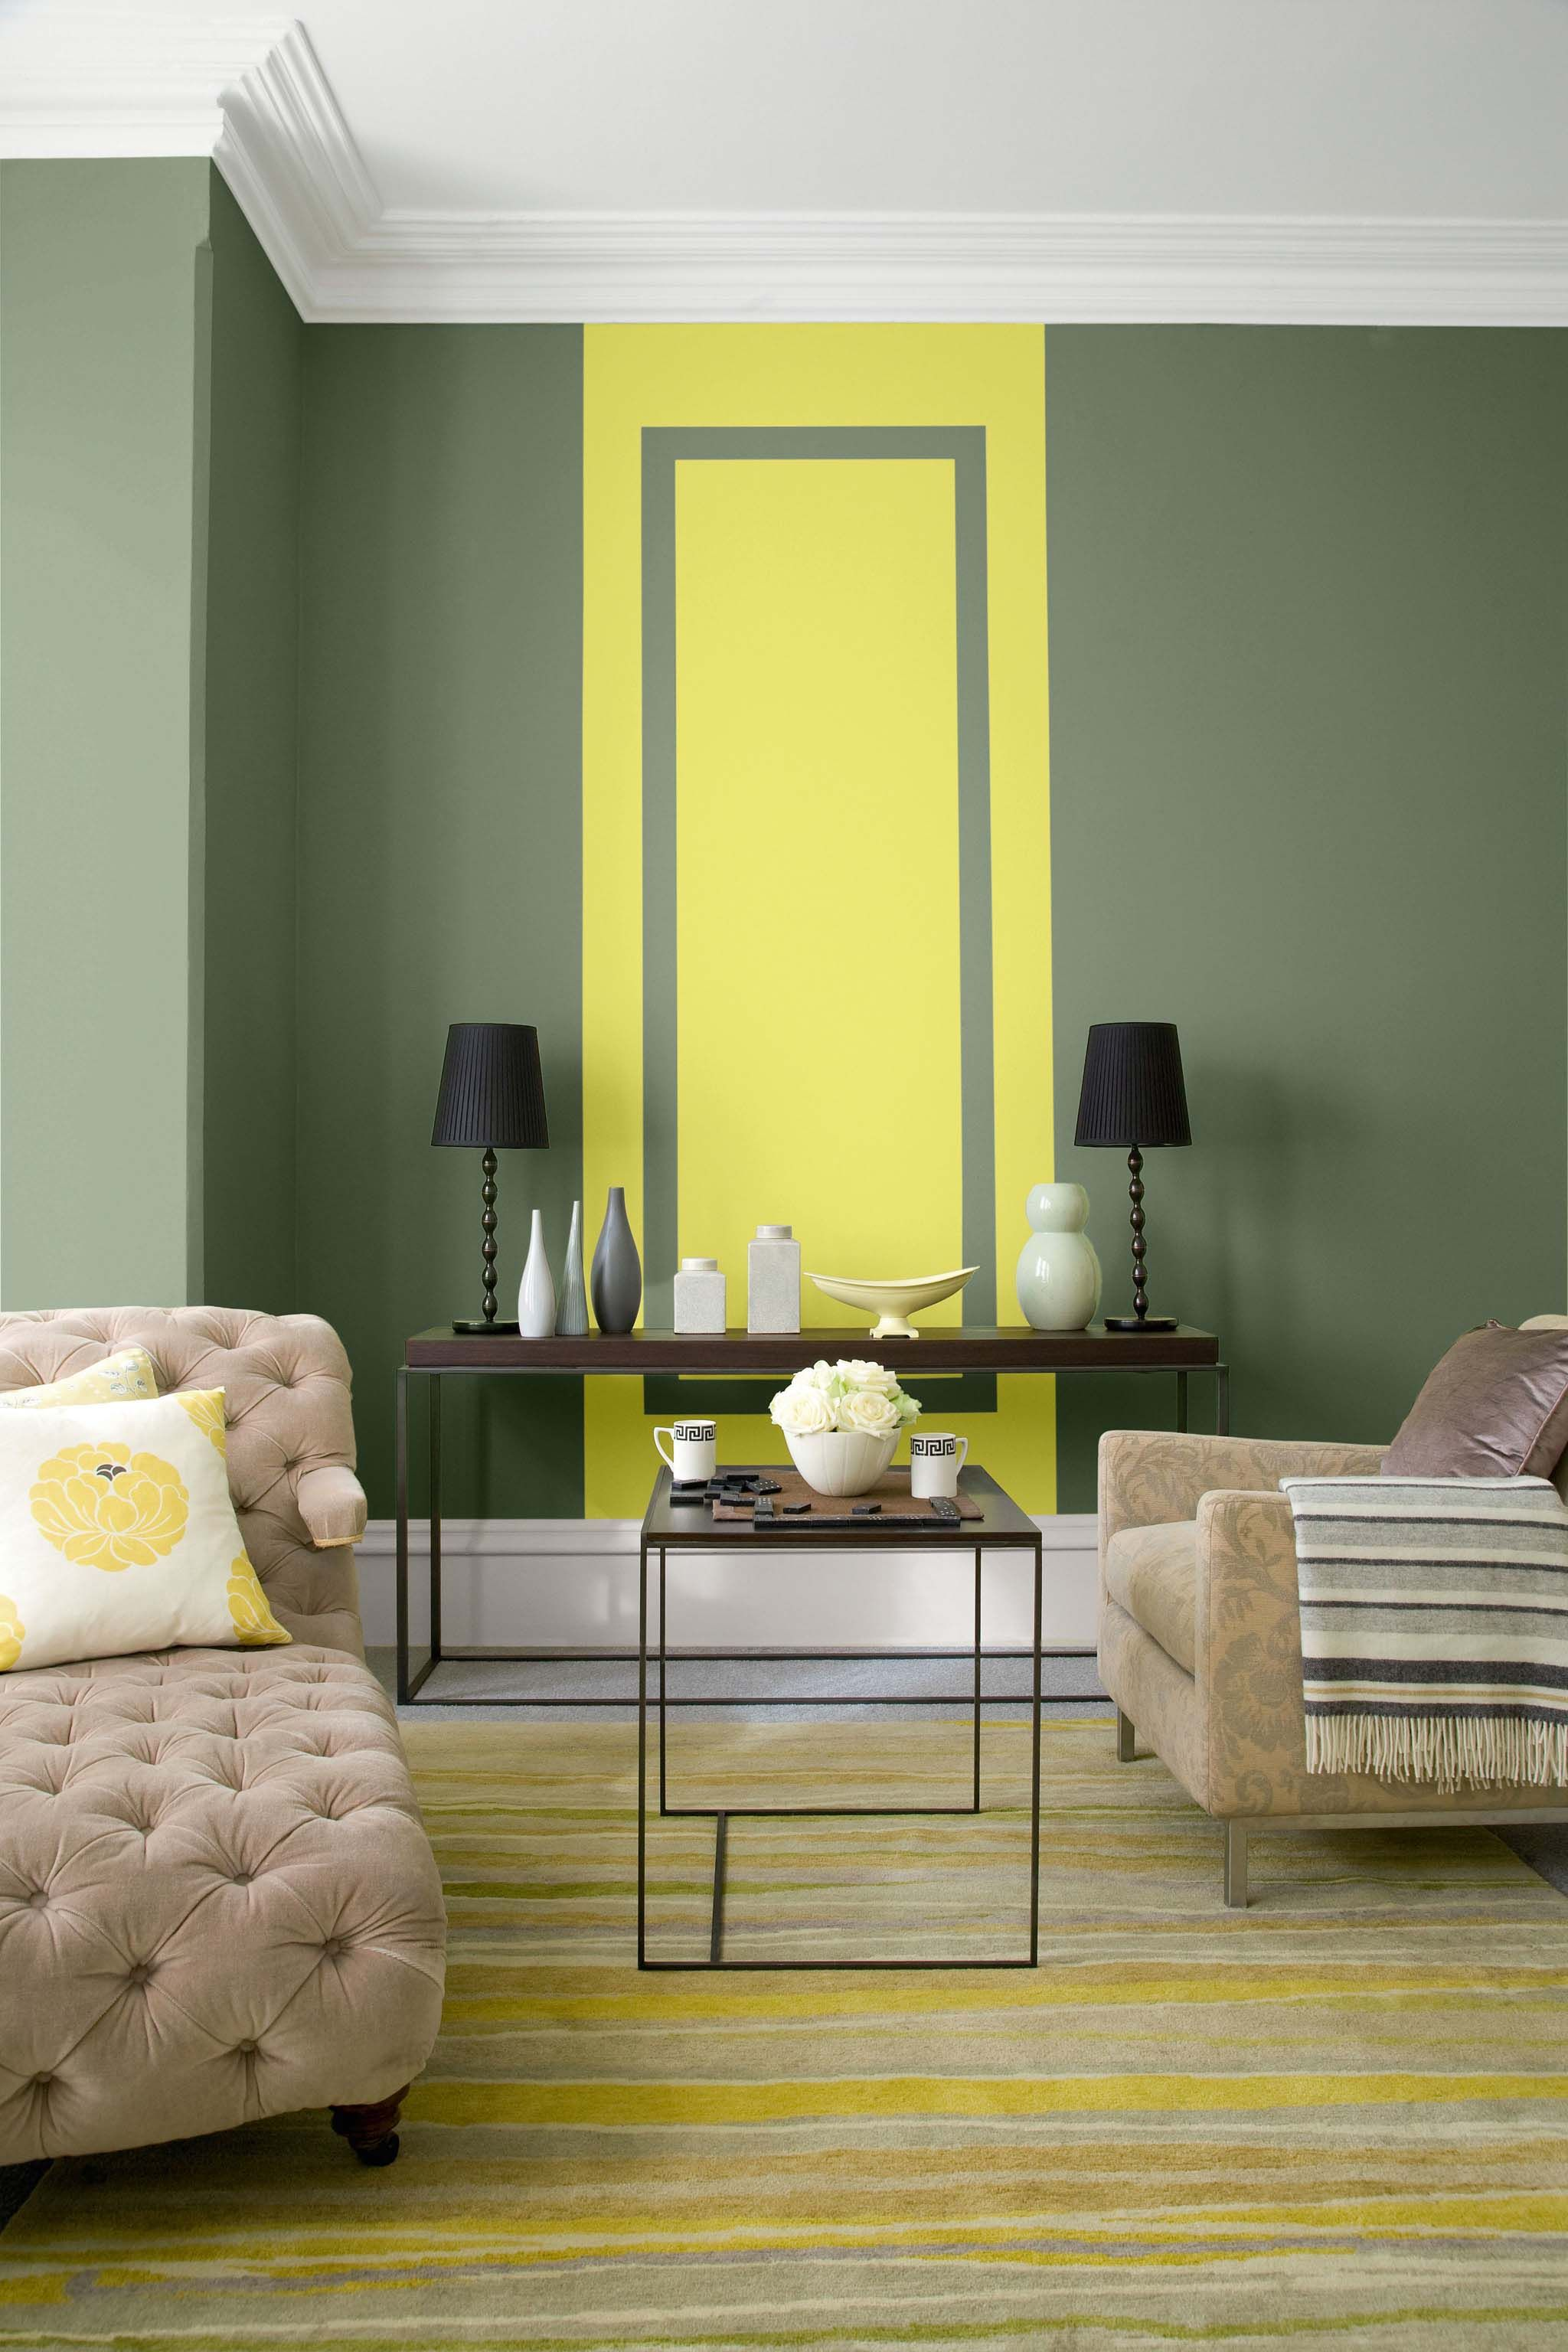 Walls in Tuscan Olive® from the Indulgence® range and